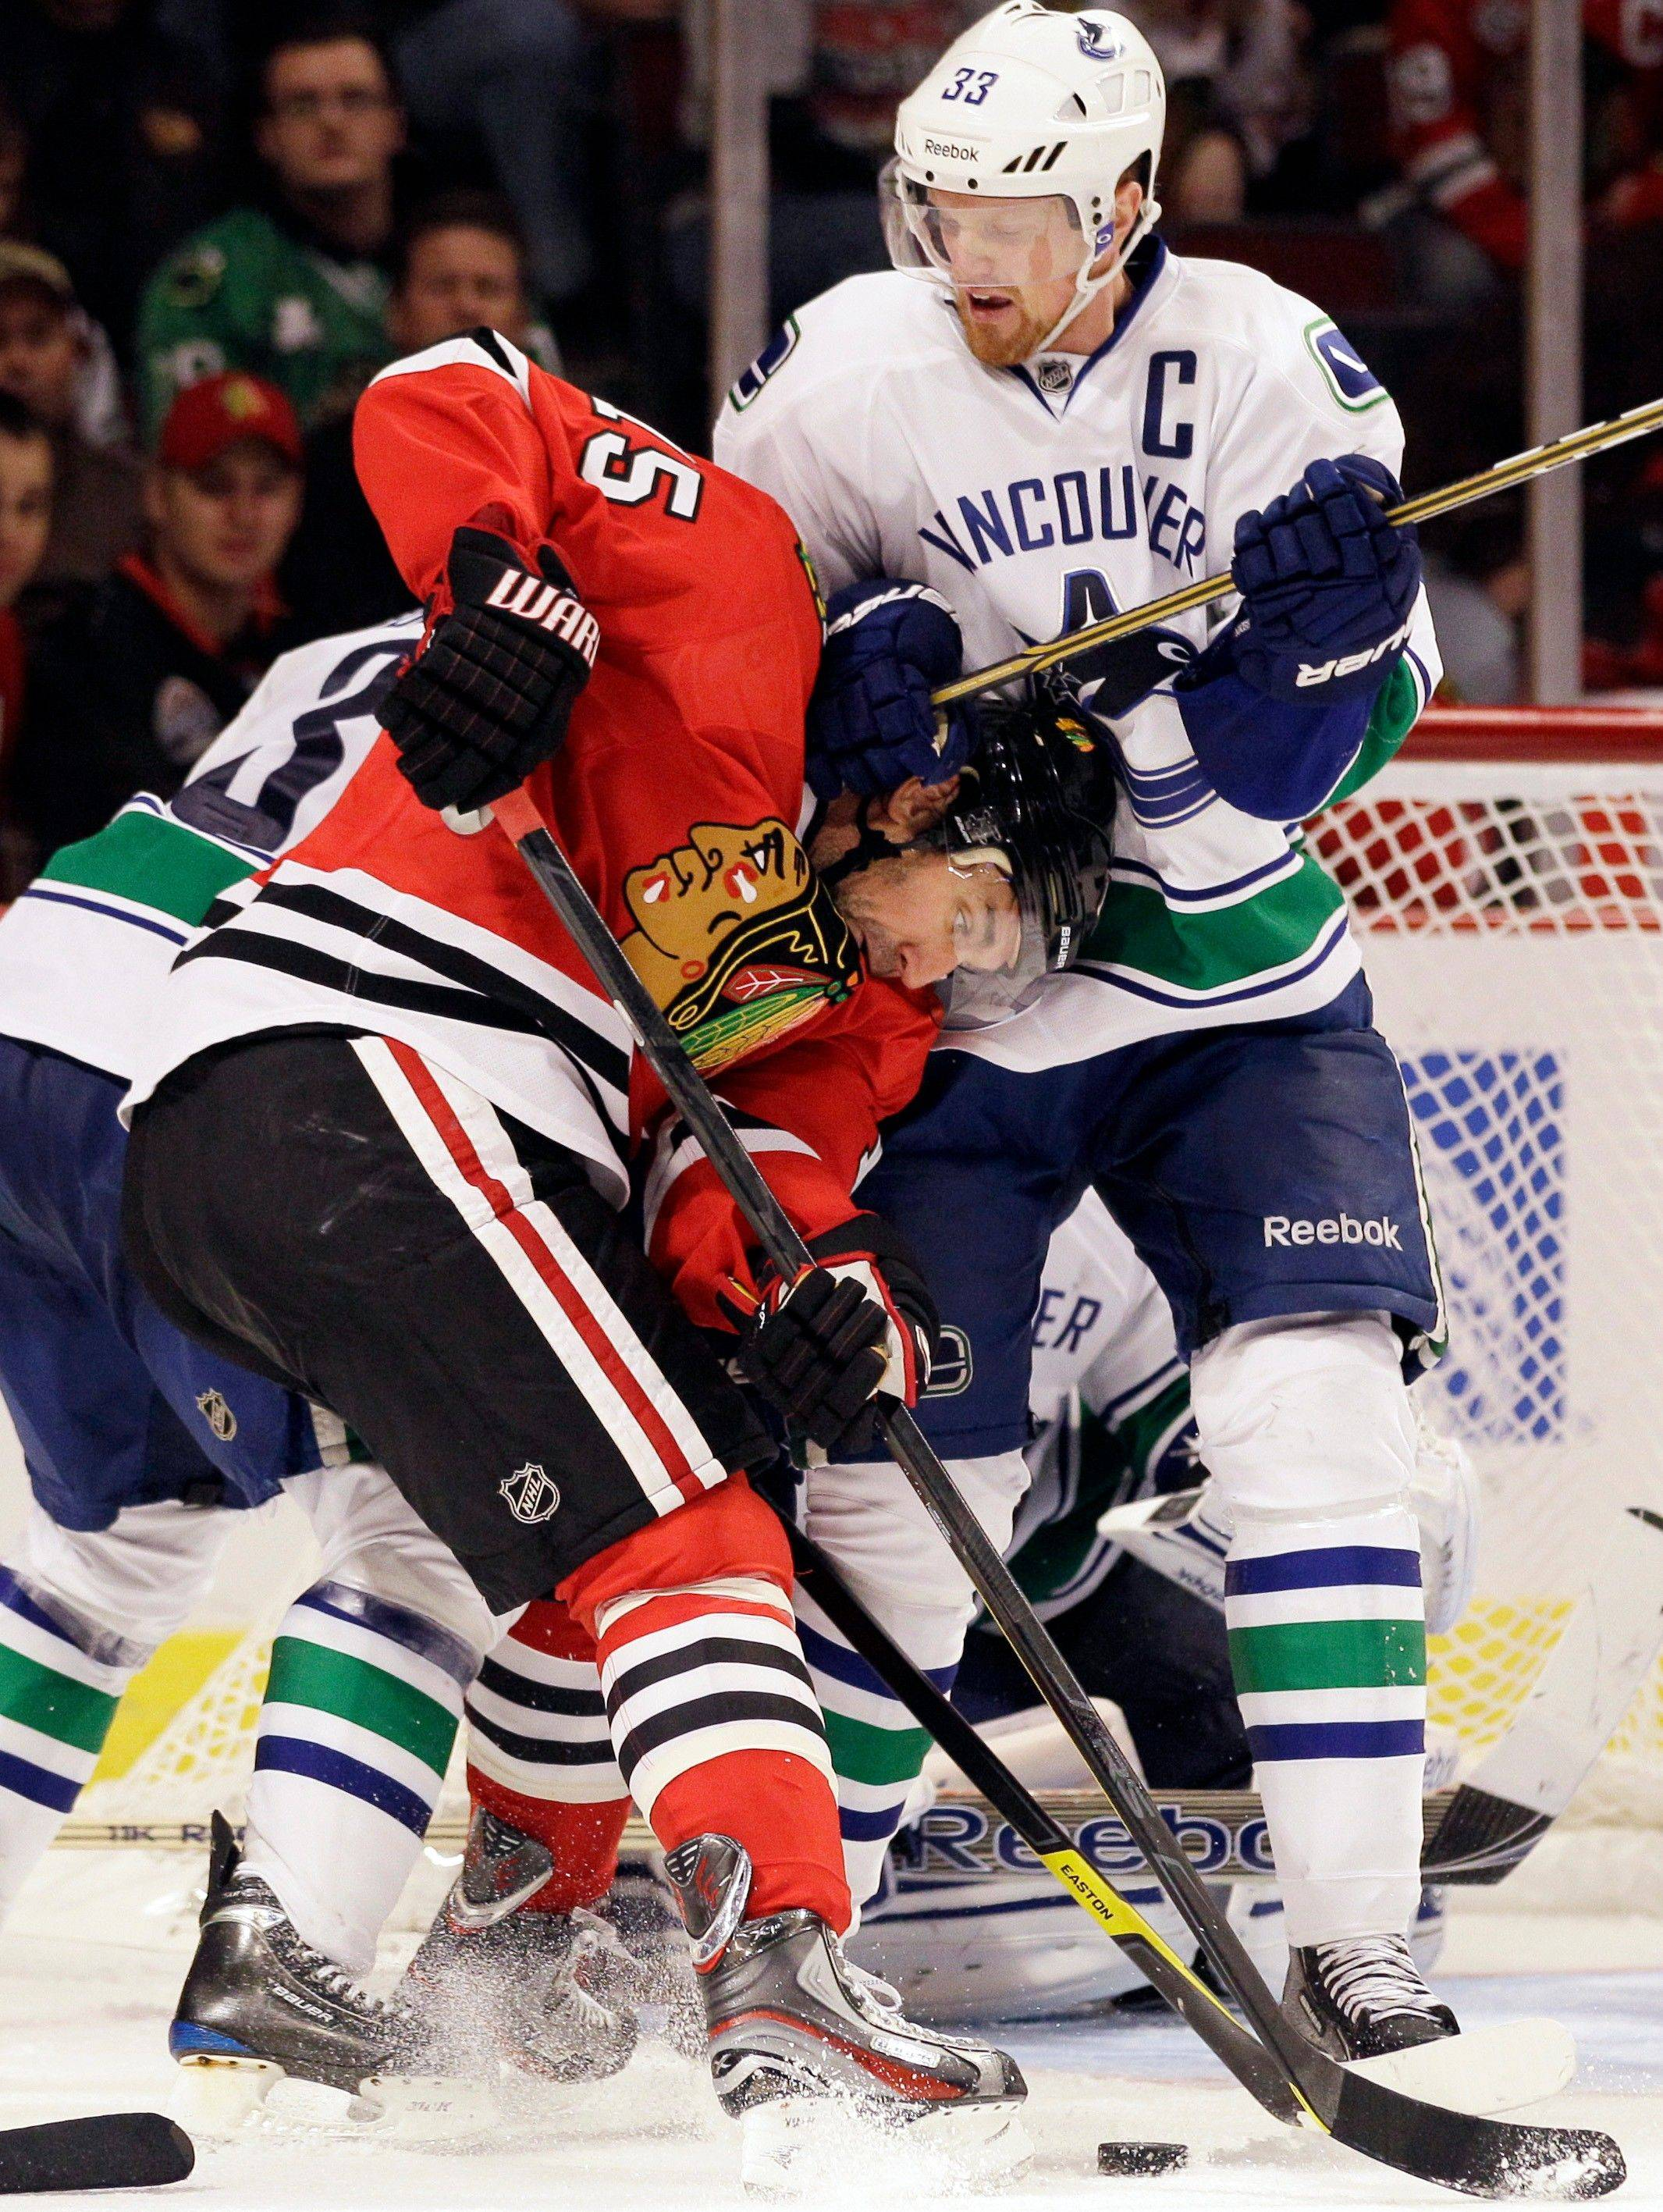 The Canucks' Henrik Sedin and the Blackhawks' Andrew Brunette battle for the puck Sunday night at the United Center.